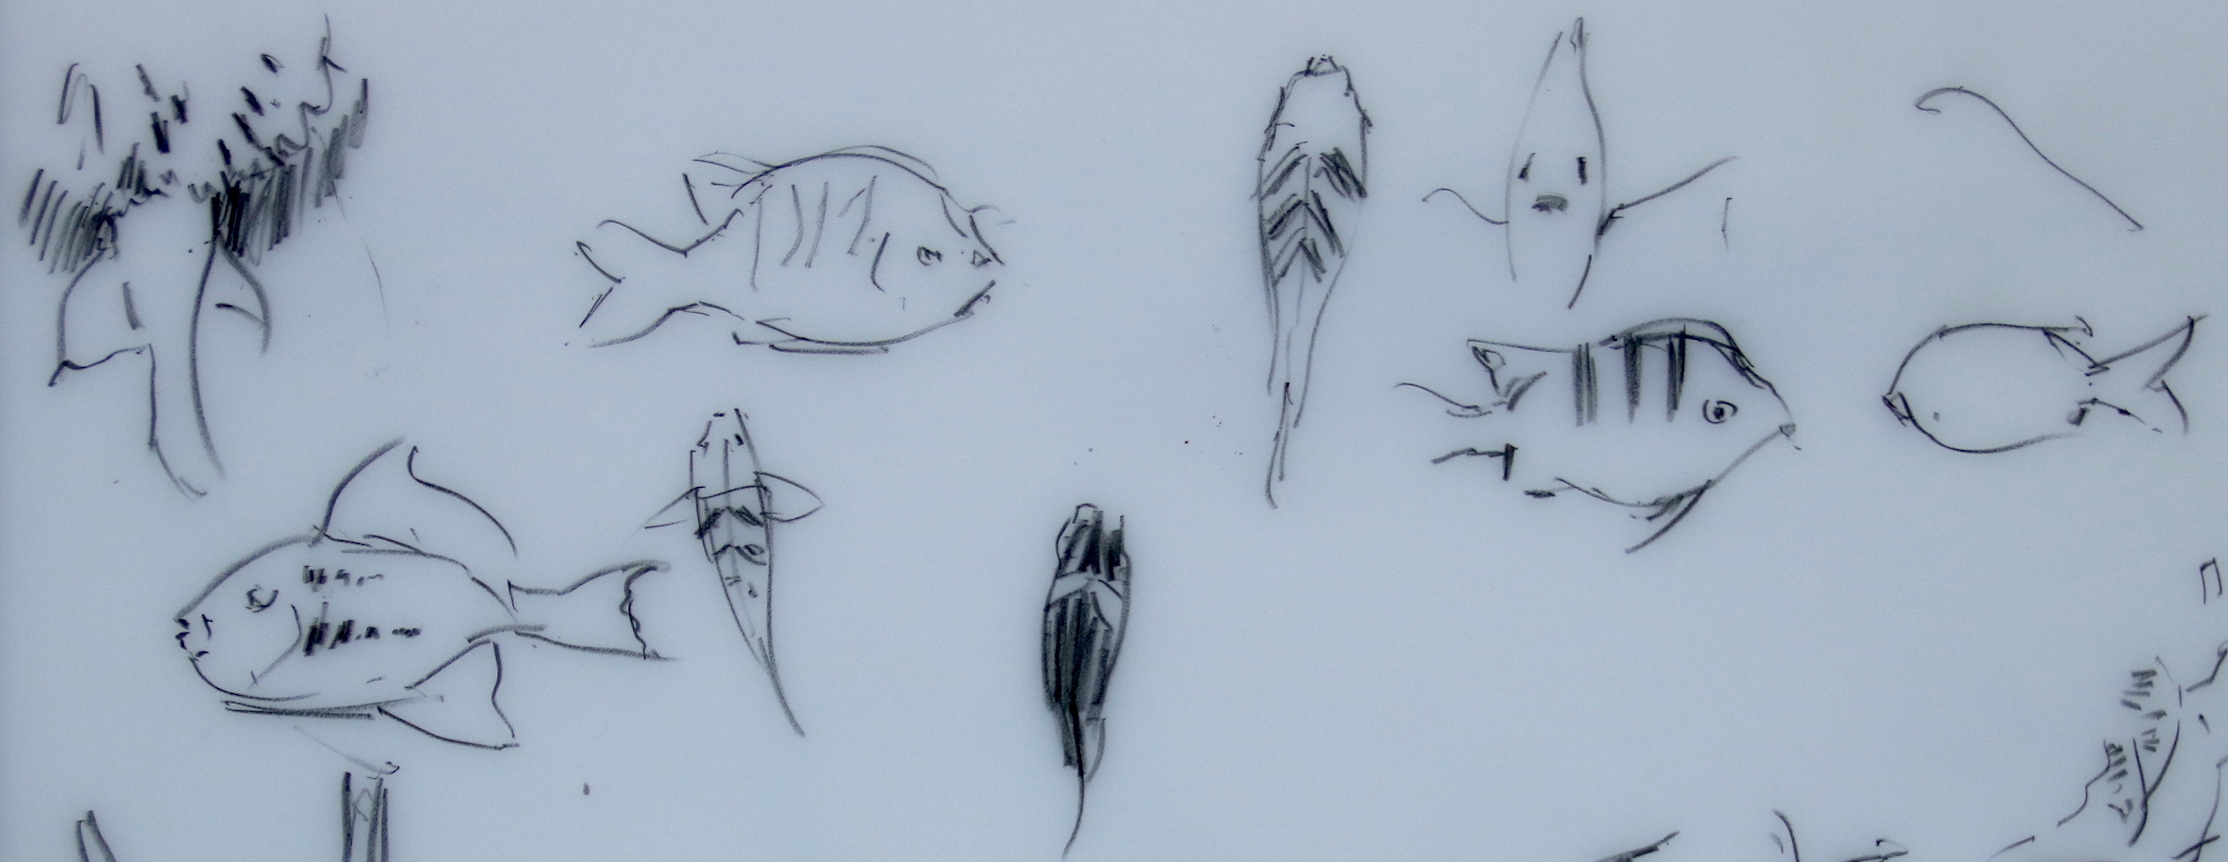 Fish sketched at Swanee reef, sea of Cortez.